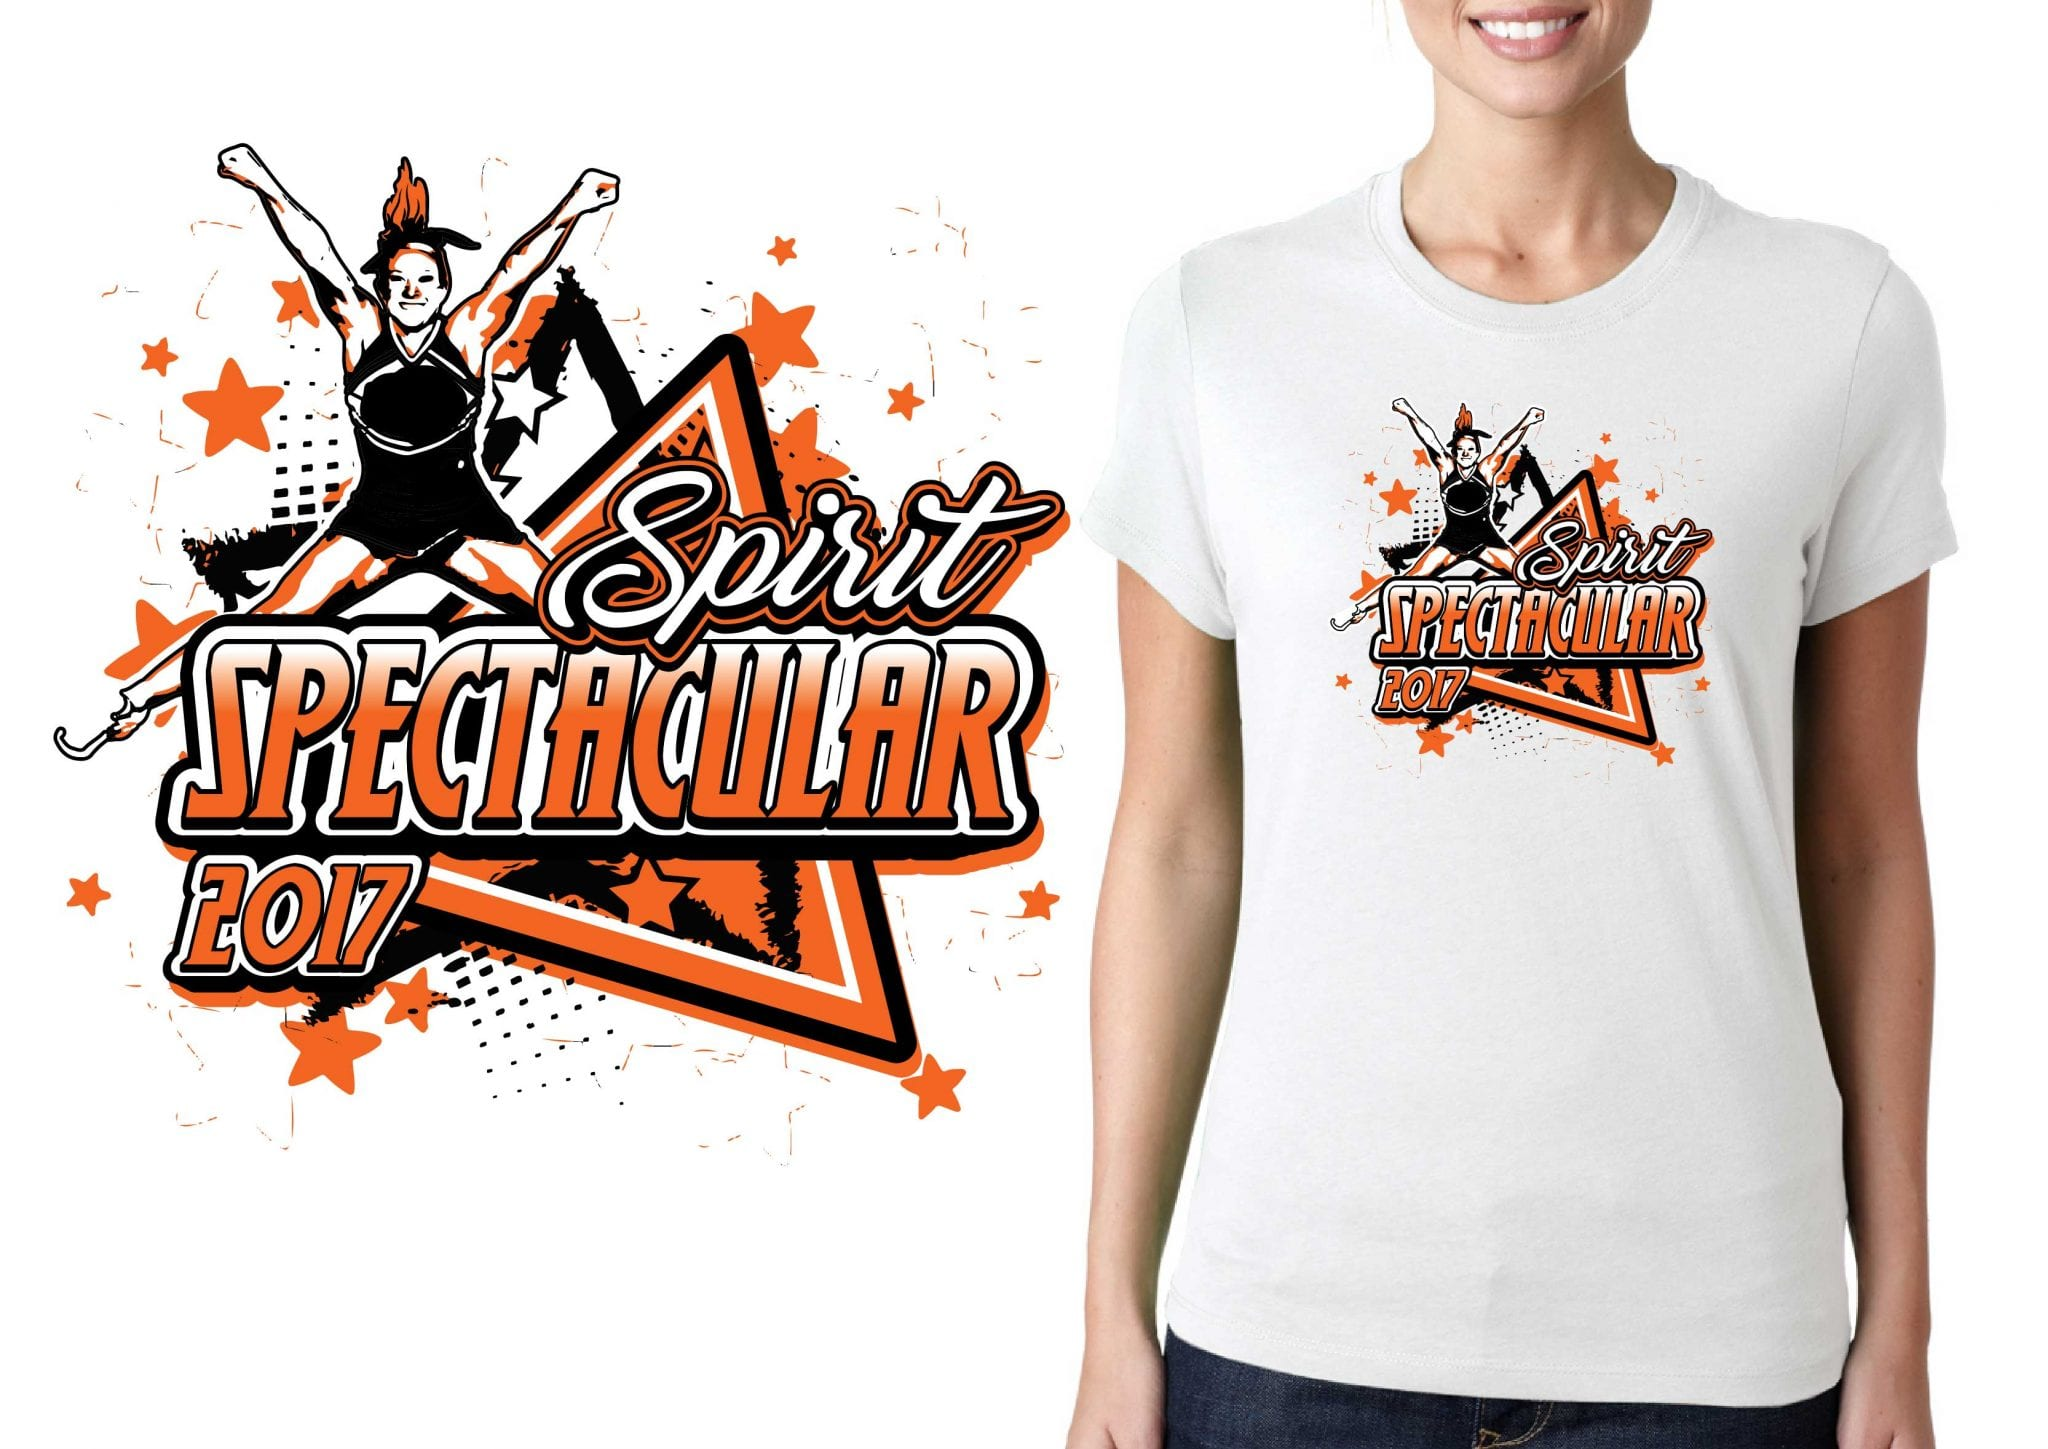 FRONT 2017 Spirit Spectacular vector logo design for cheer t-shirt UrArtStudio